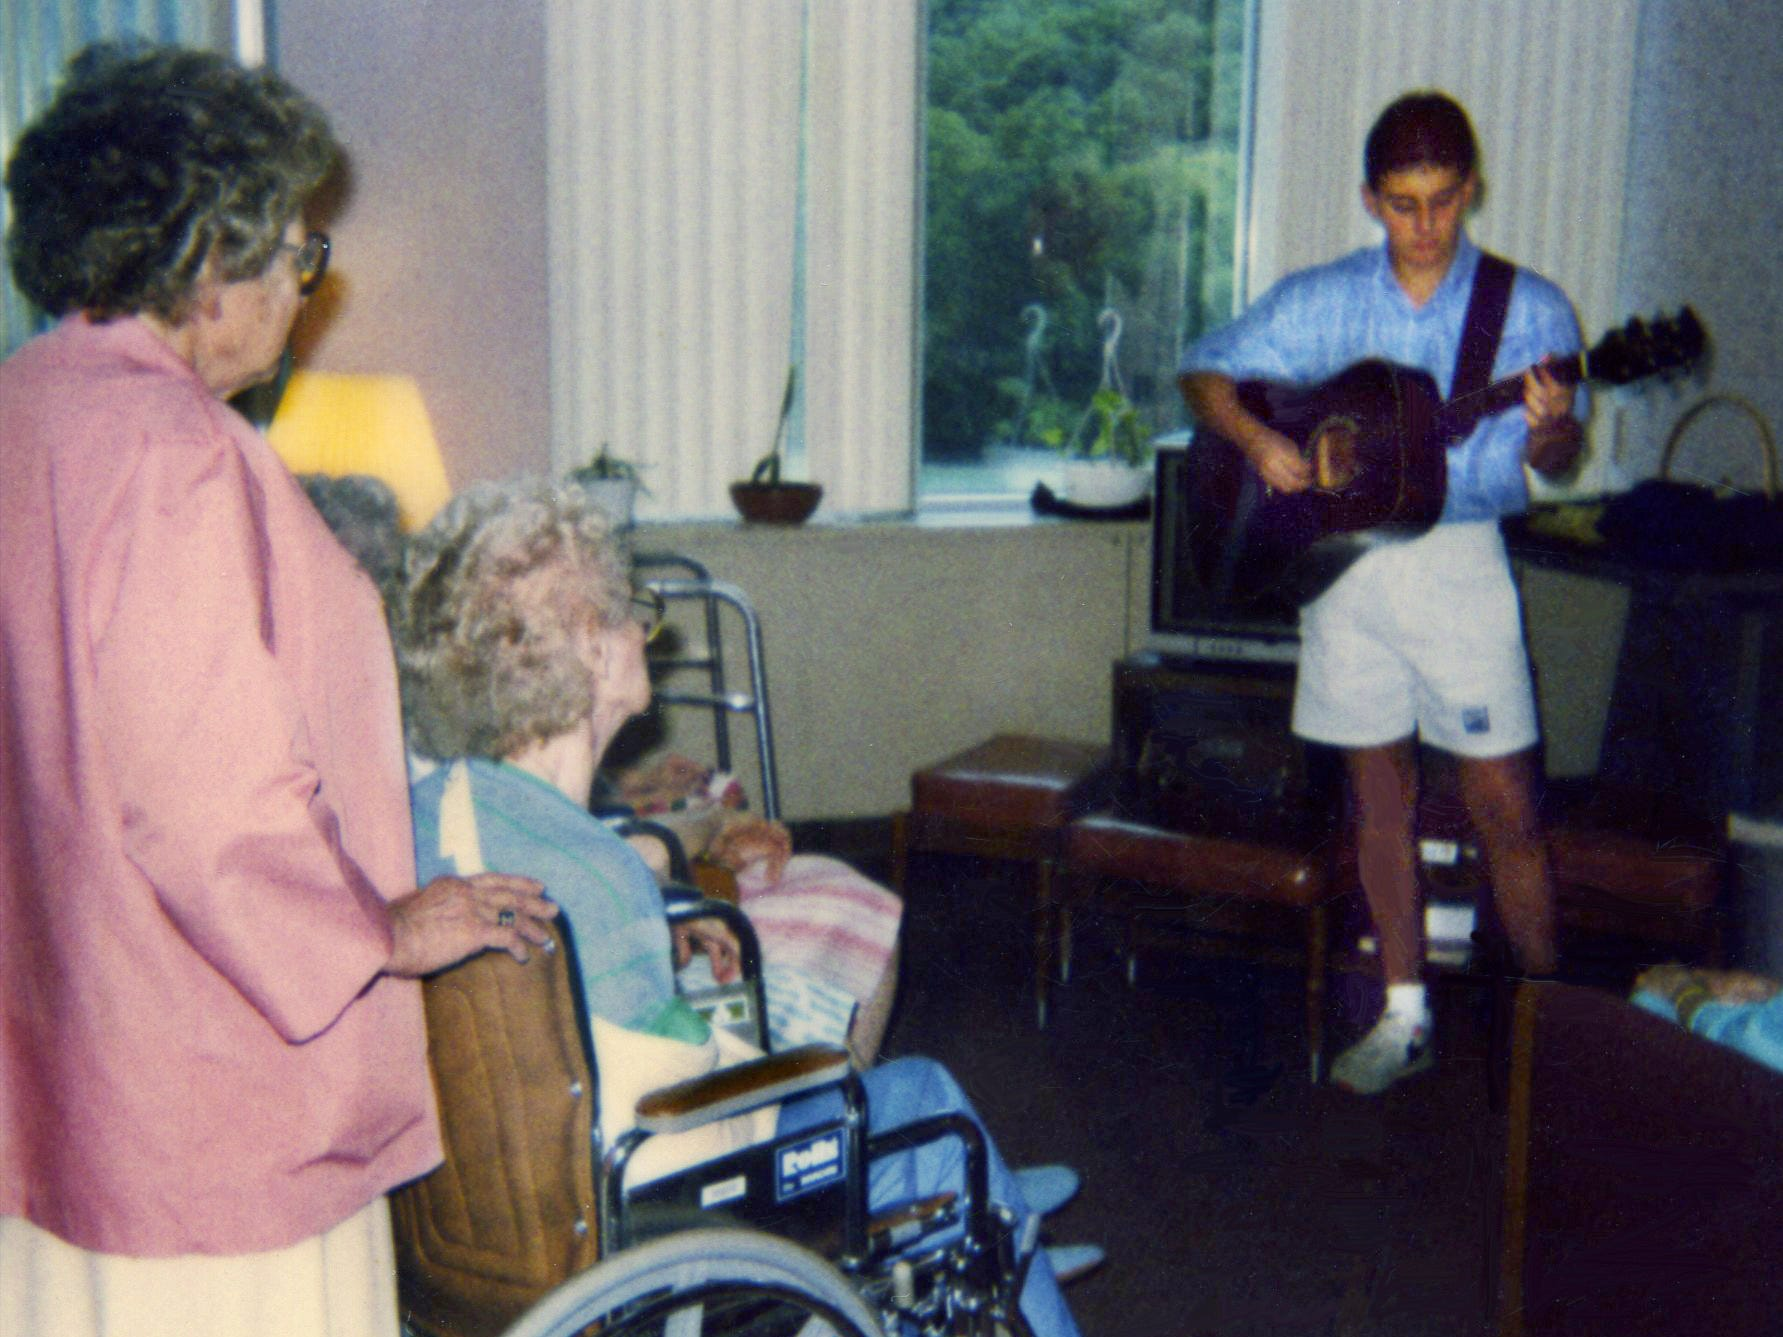 Brad Paisley, 19, plays for patients at Reynold Memorial Hospital in Glen Dale, W. Va., on Aug. 6, 1991.